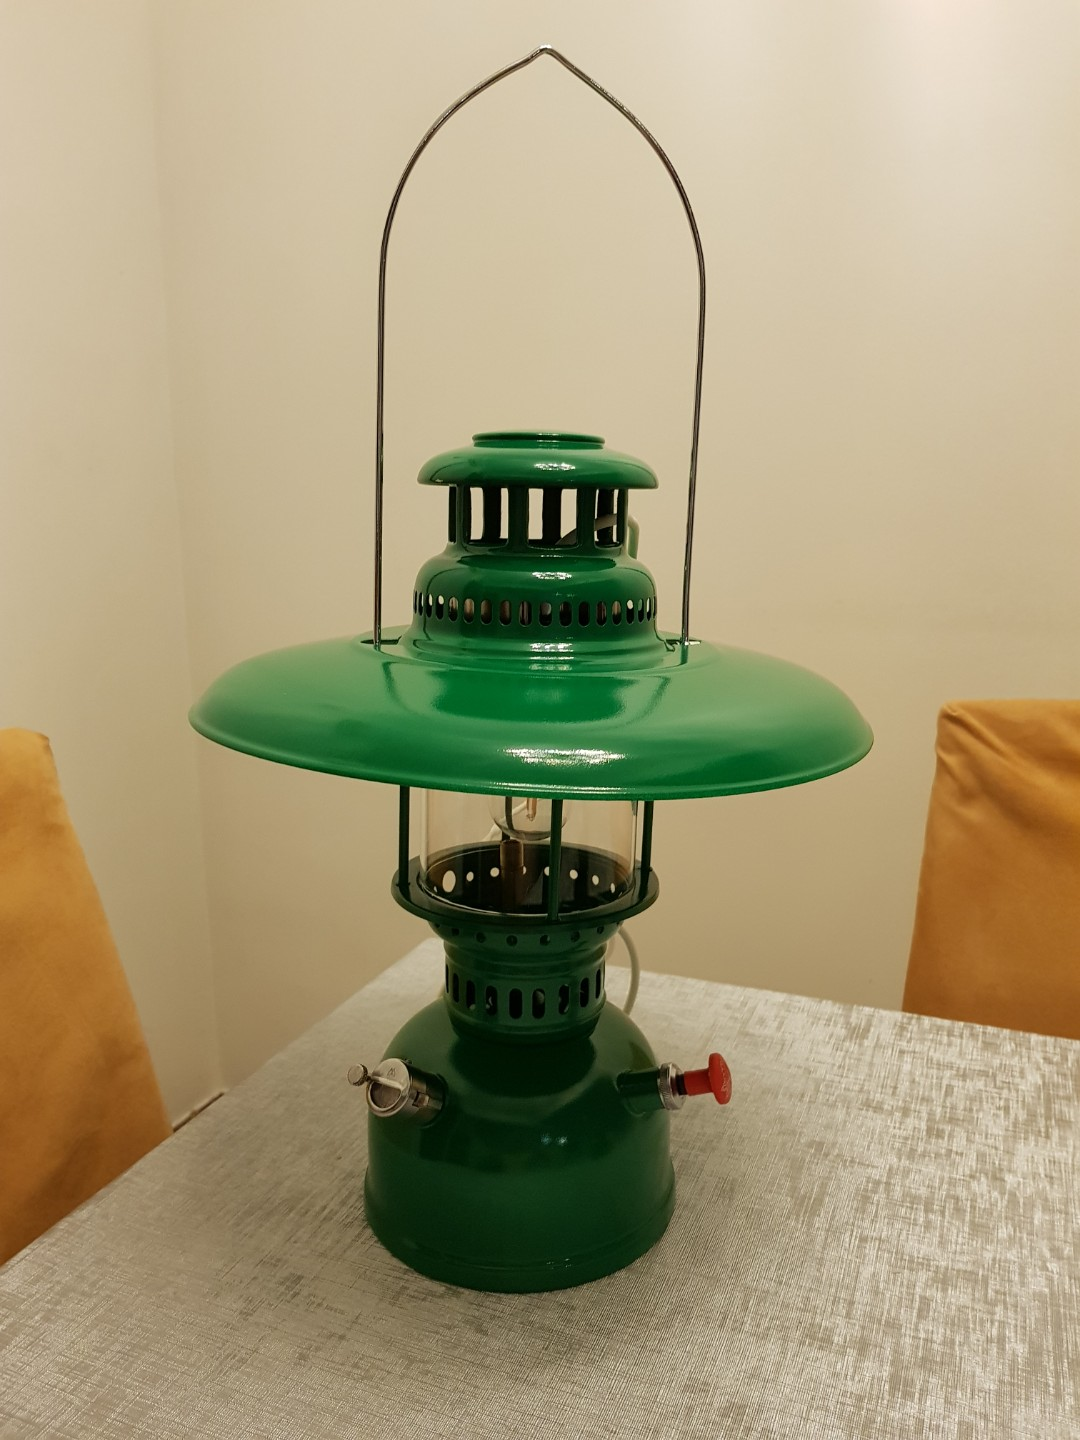 Modern Kerosene Lamp Brand New Original Retro Vintage Antique Kerosene Lamp Lantern Light Fitted With Modern Led Bulb With A Touch Of Modern Technology To Brighten Up